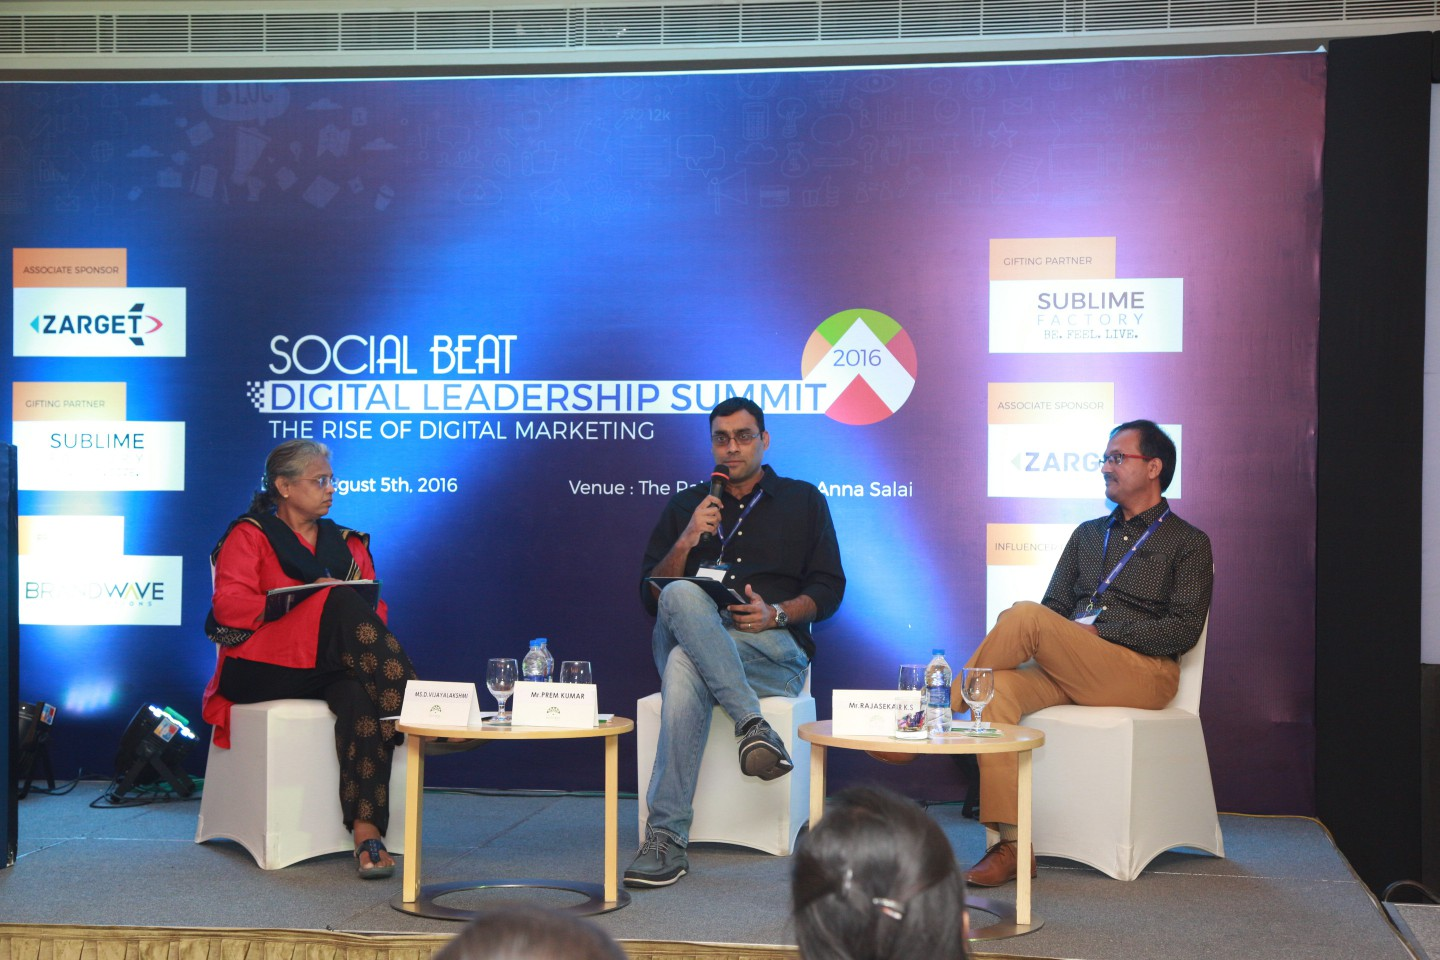 Content-Marketing-Panel-Social-Beat-Digital-Leadership-Summit-2016-Chennai